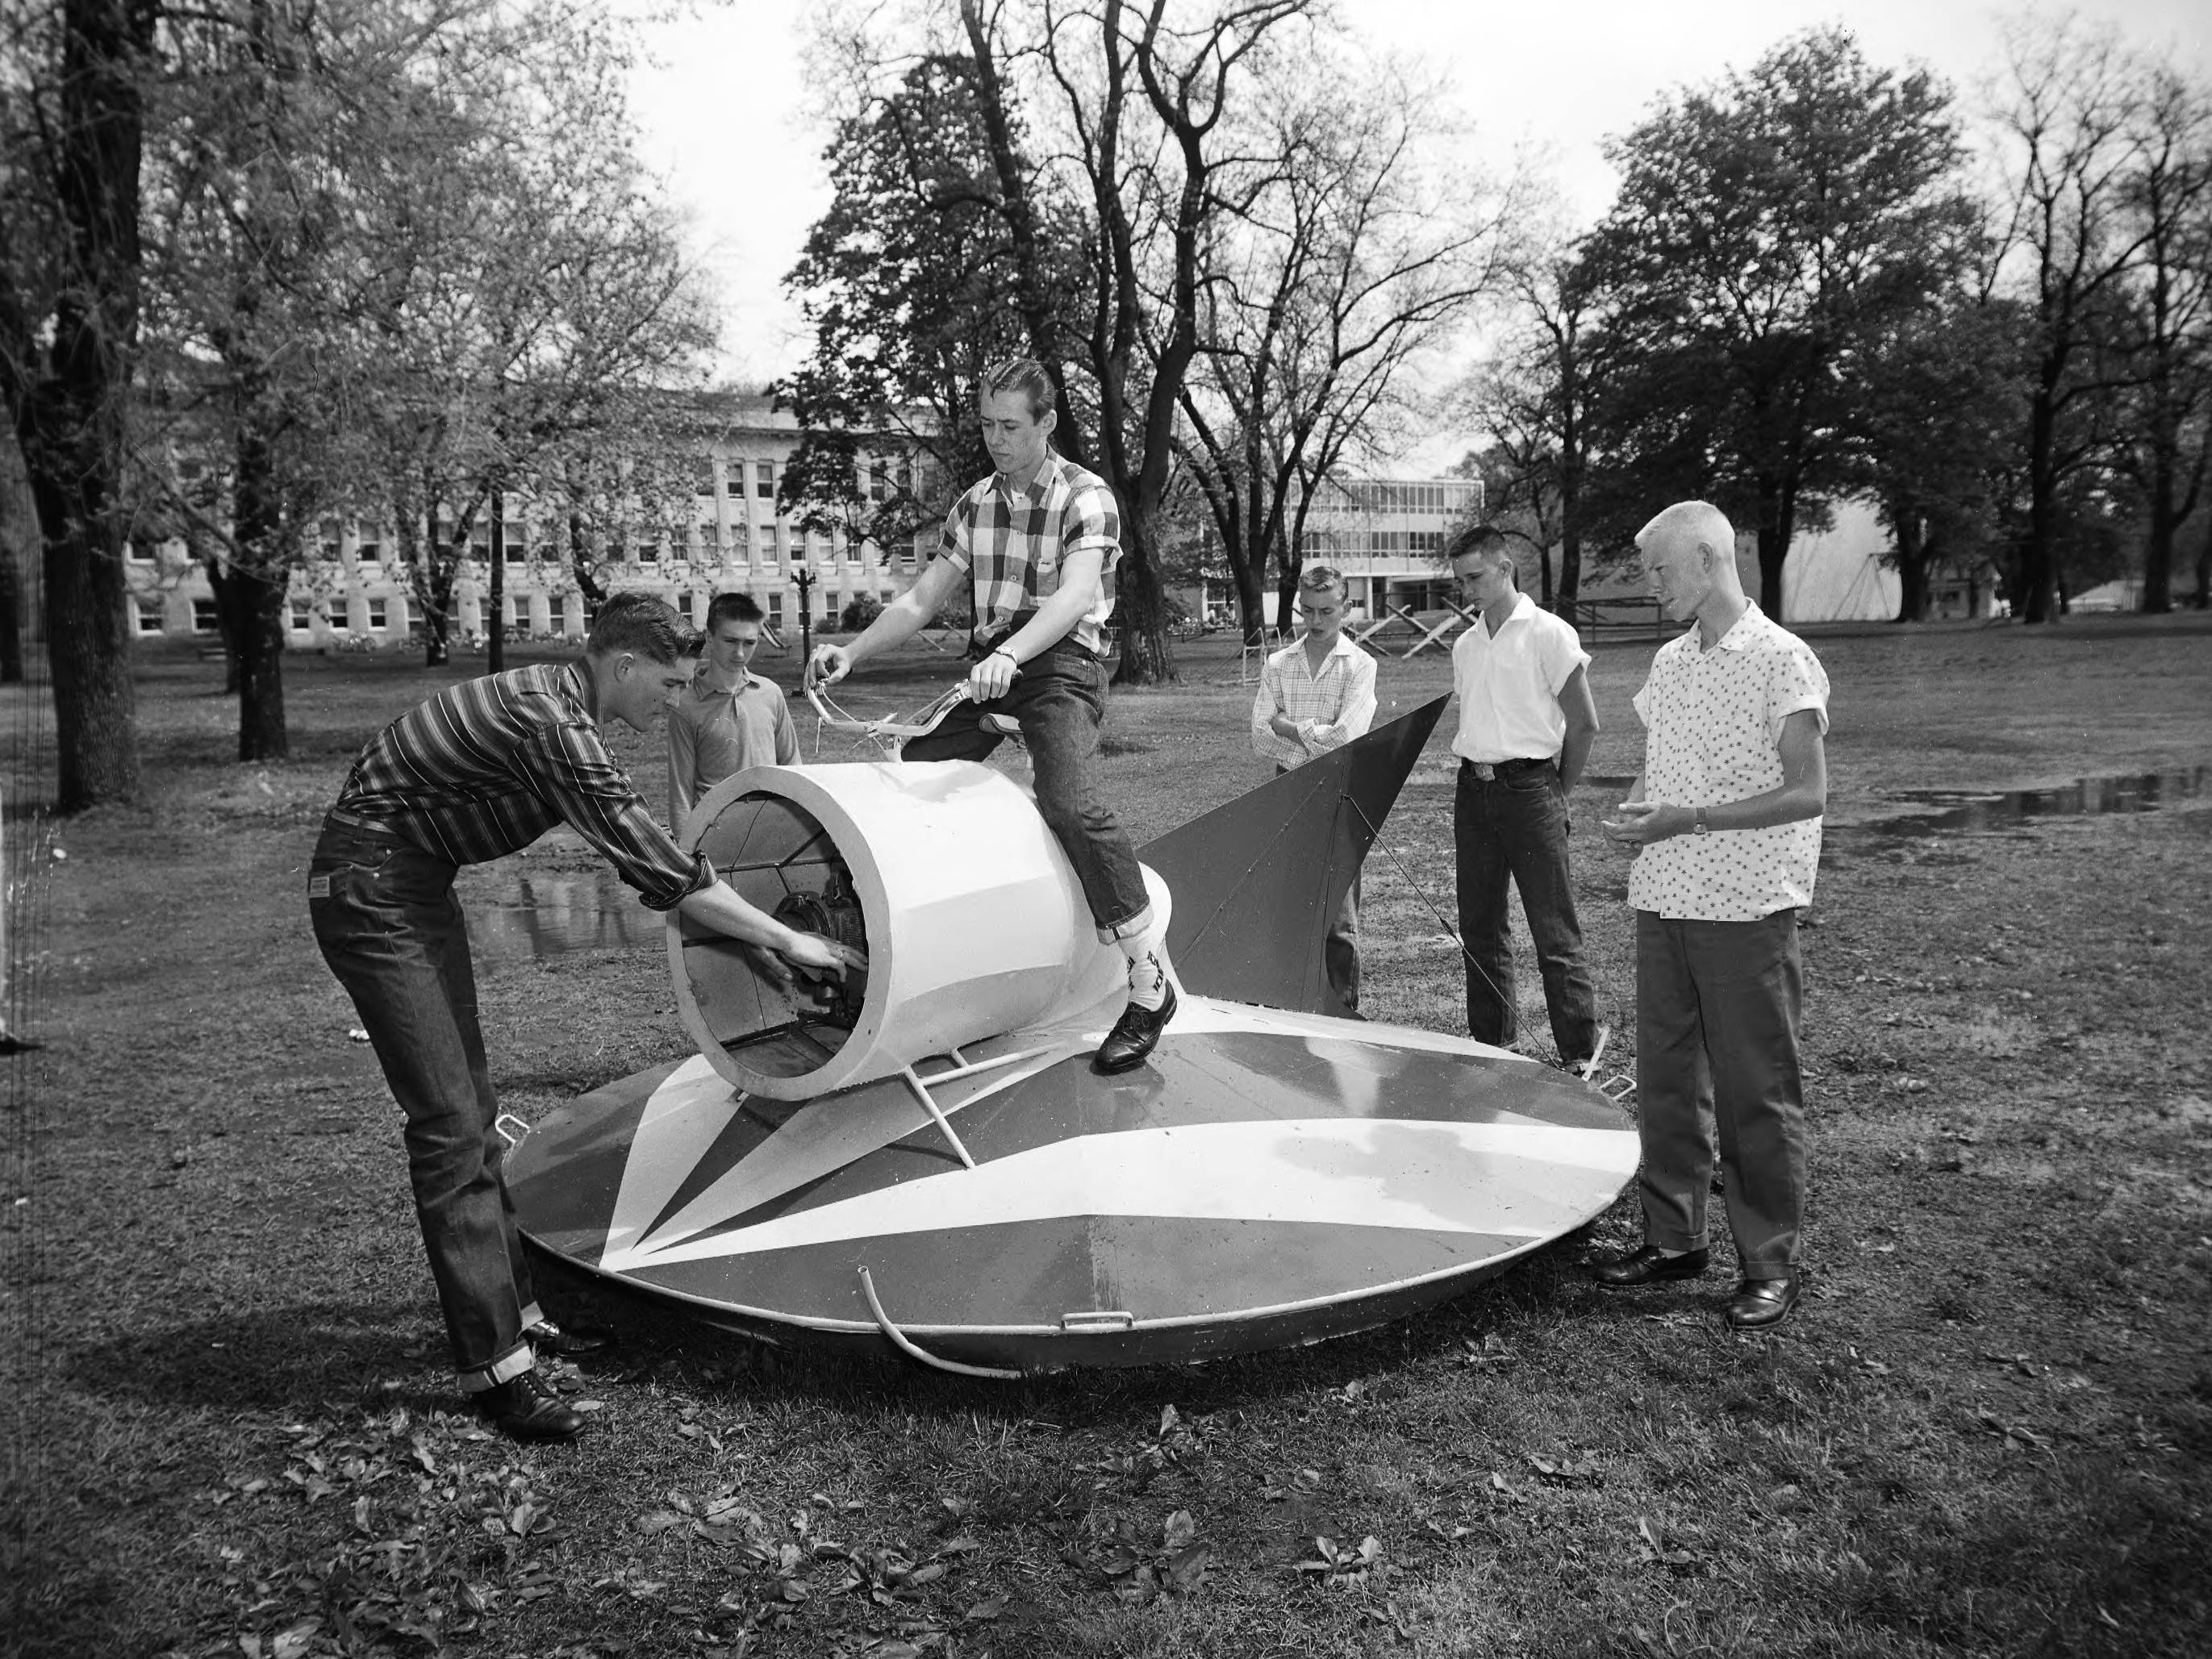 Two Norwood High School seniors built this flying saucer for the tenth annual Southwest Missouri State College Student Craftsman's Fair. Seated at the handlebar controls is Jack Hylton while Edwin Derrin spins the propeller. Others pictured are Wayne Honsinger, Gary Strohm, Jack Barnett, and Vic Harris. Published in the Leader & Press on April 29, 1960.